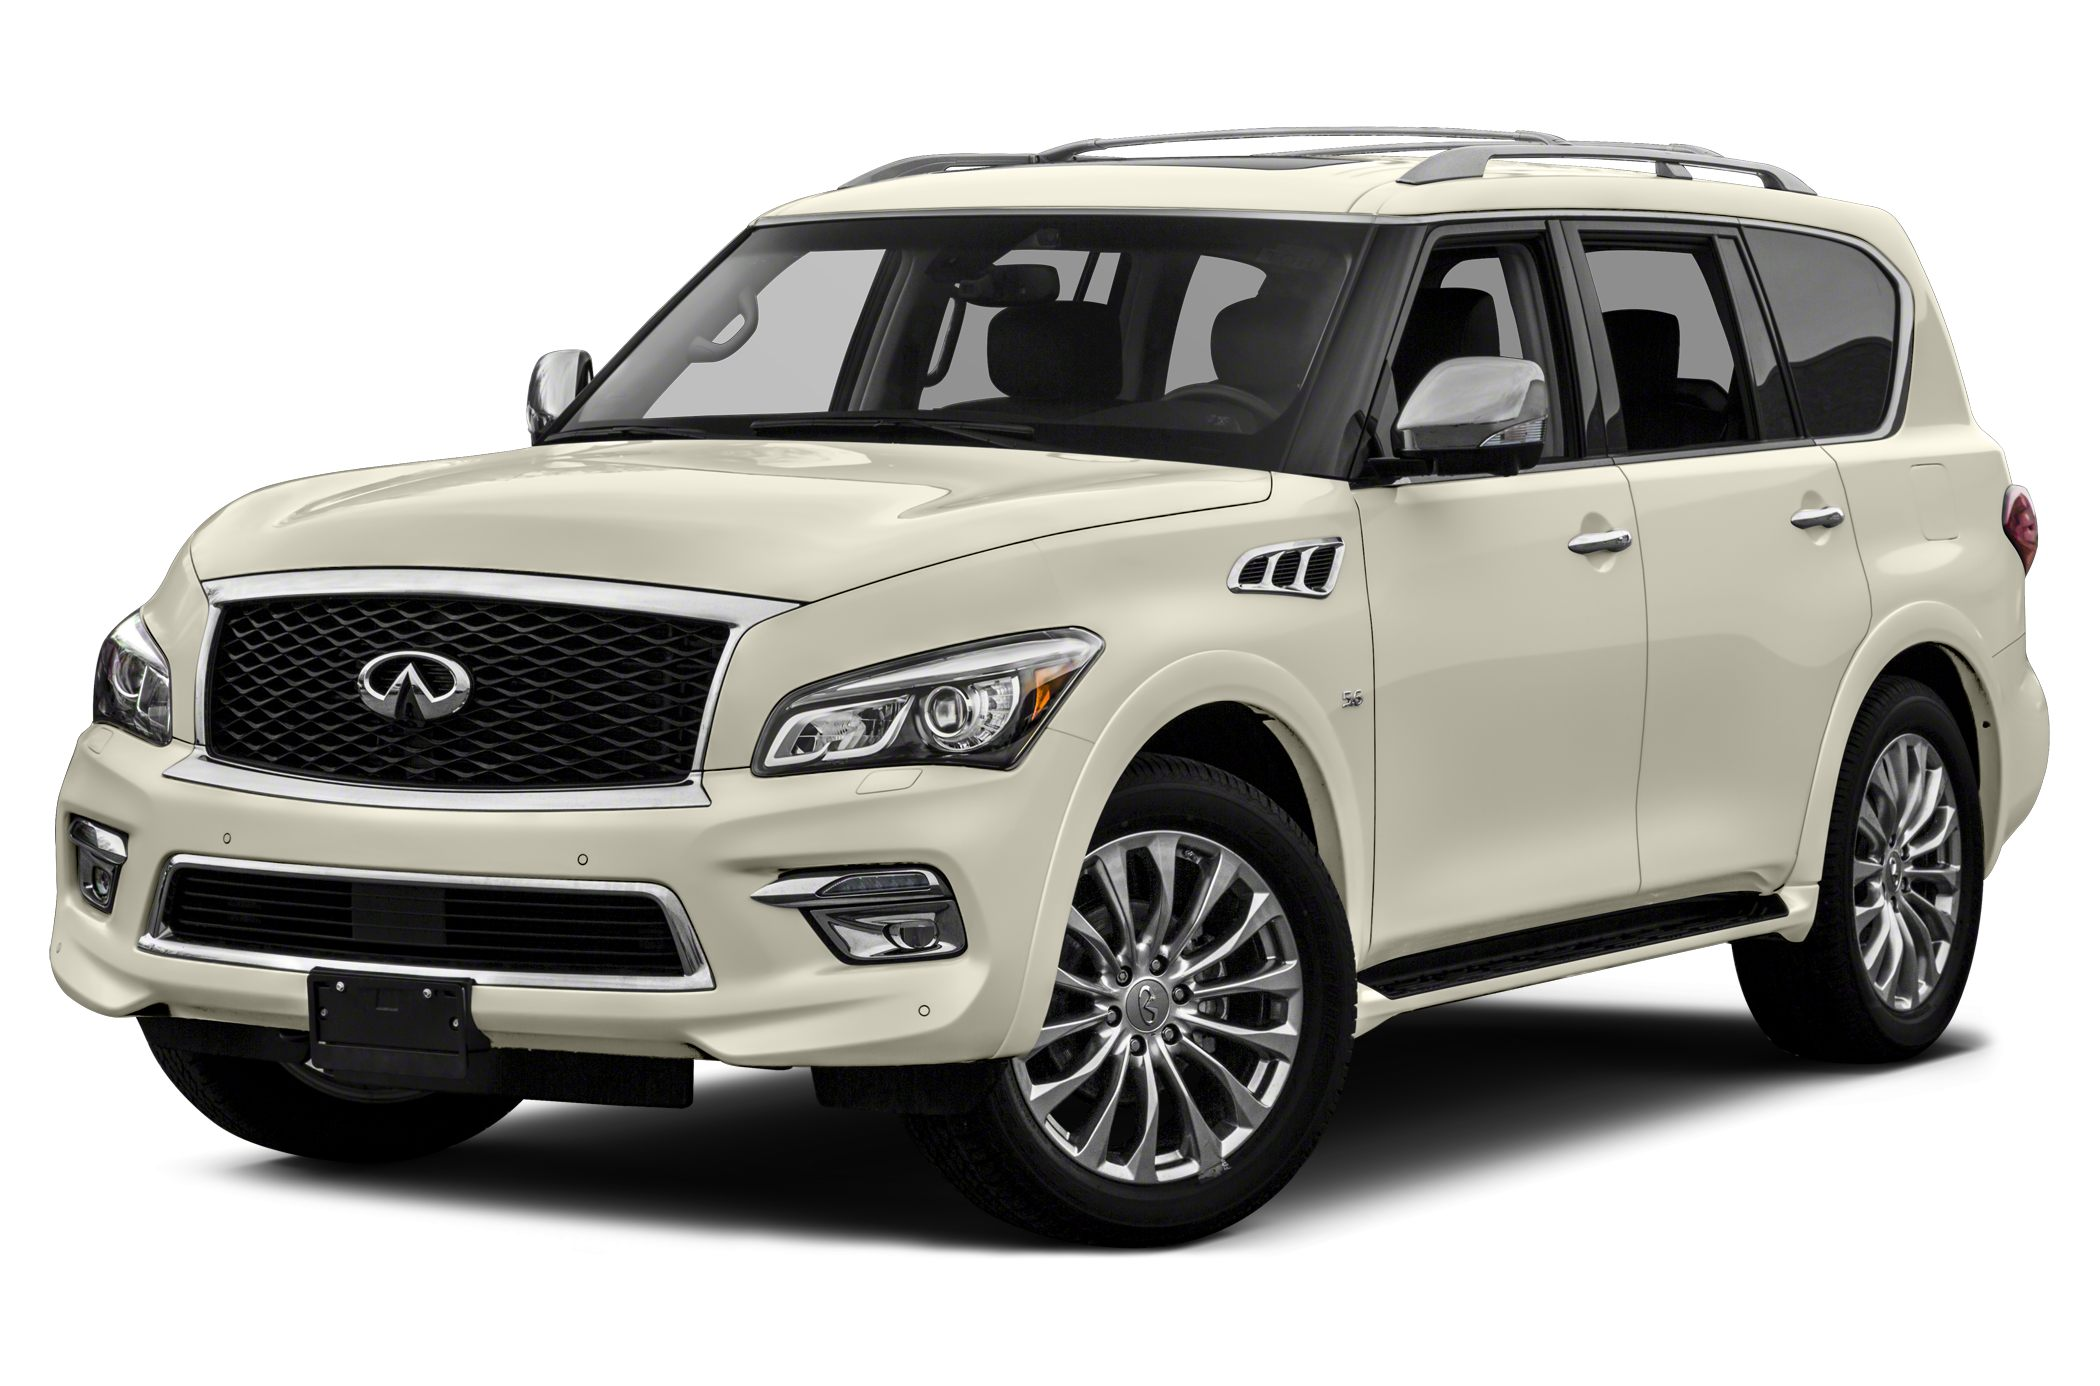 Used 2017 INFINITI QX80 for sale - Pricing & Features | Edmunds